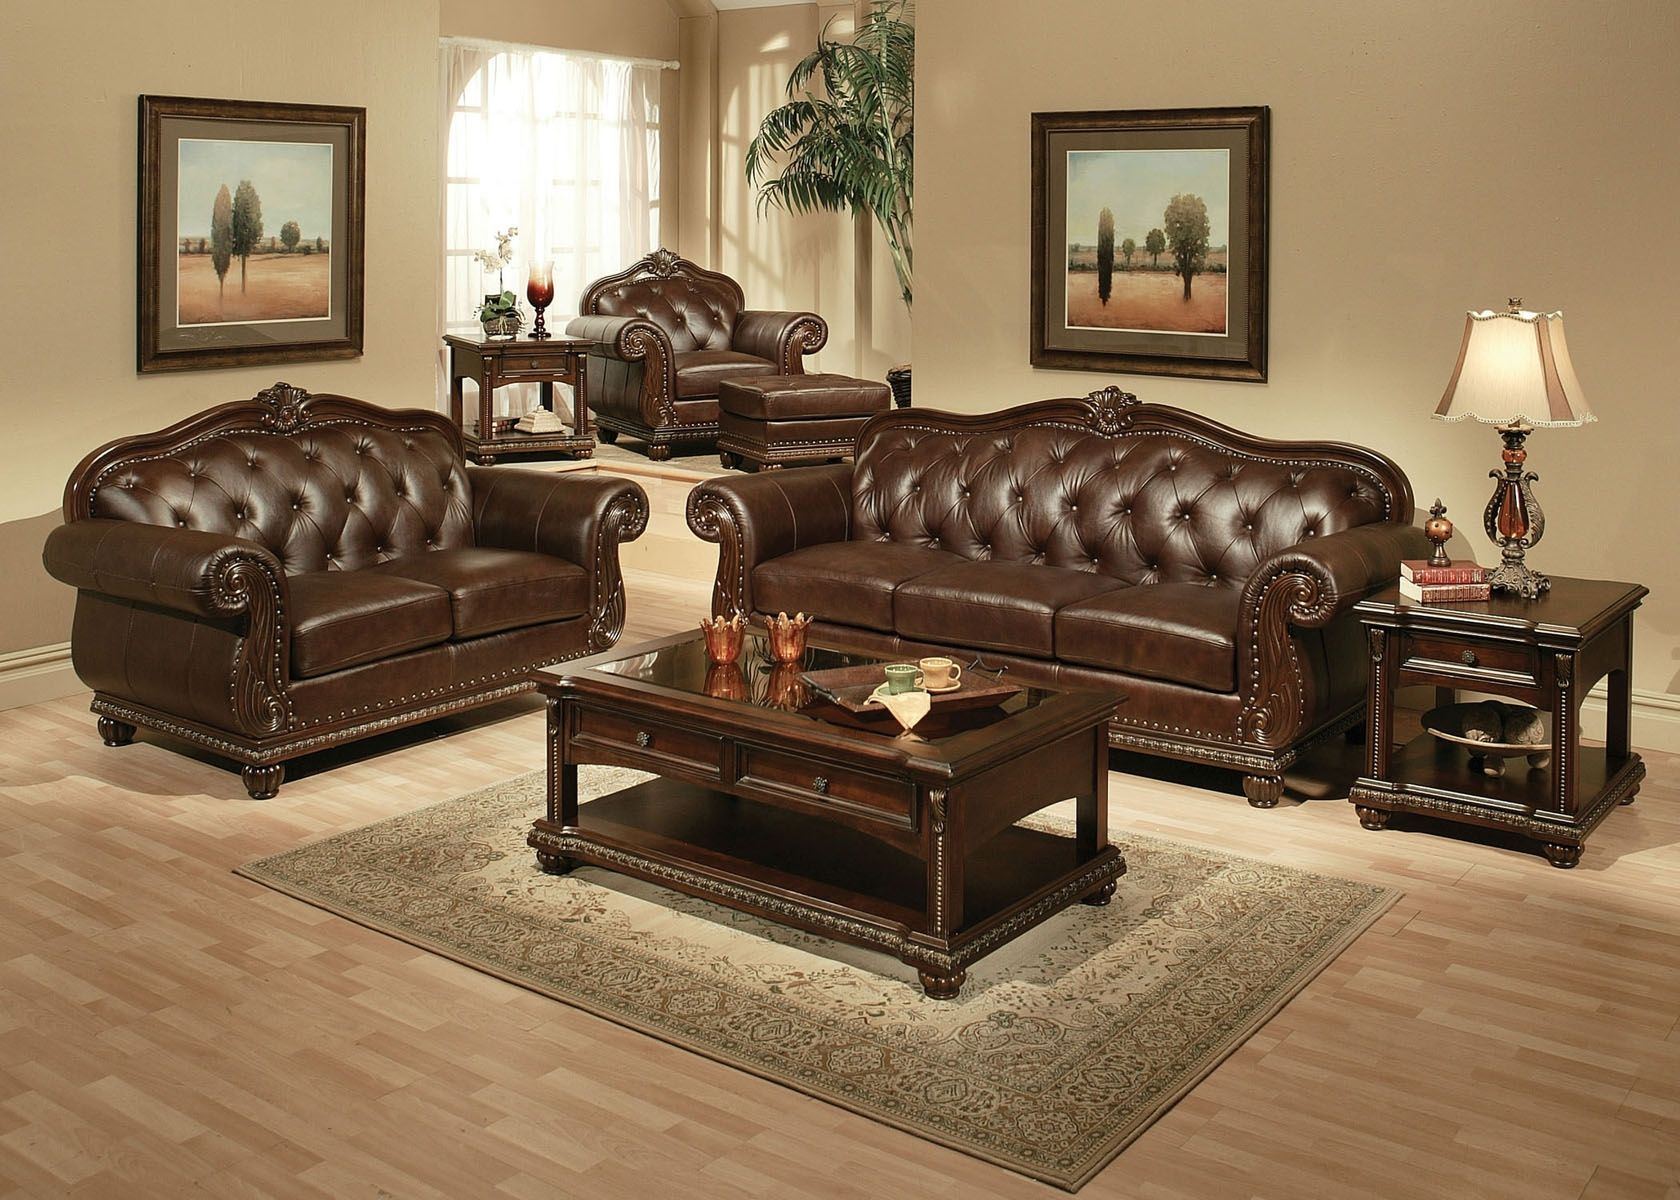 Acme Dresden Traditional Old World Brown Faux Leather Chenille SOFA LOVESEAT